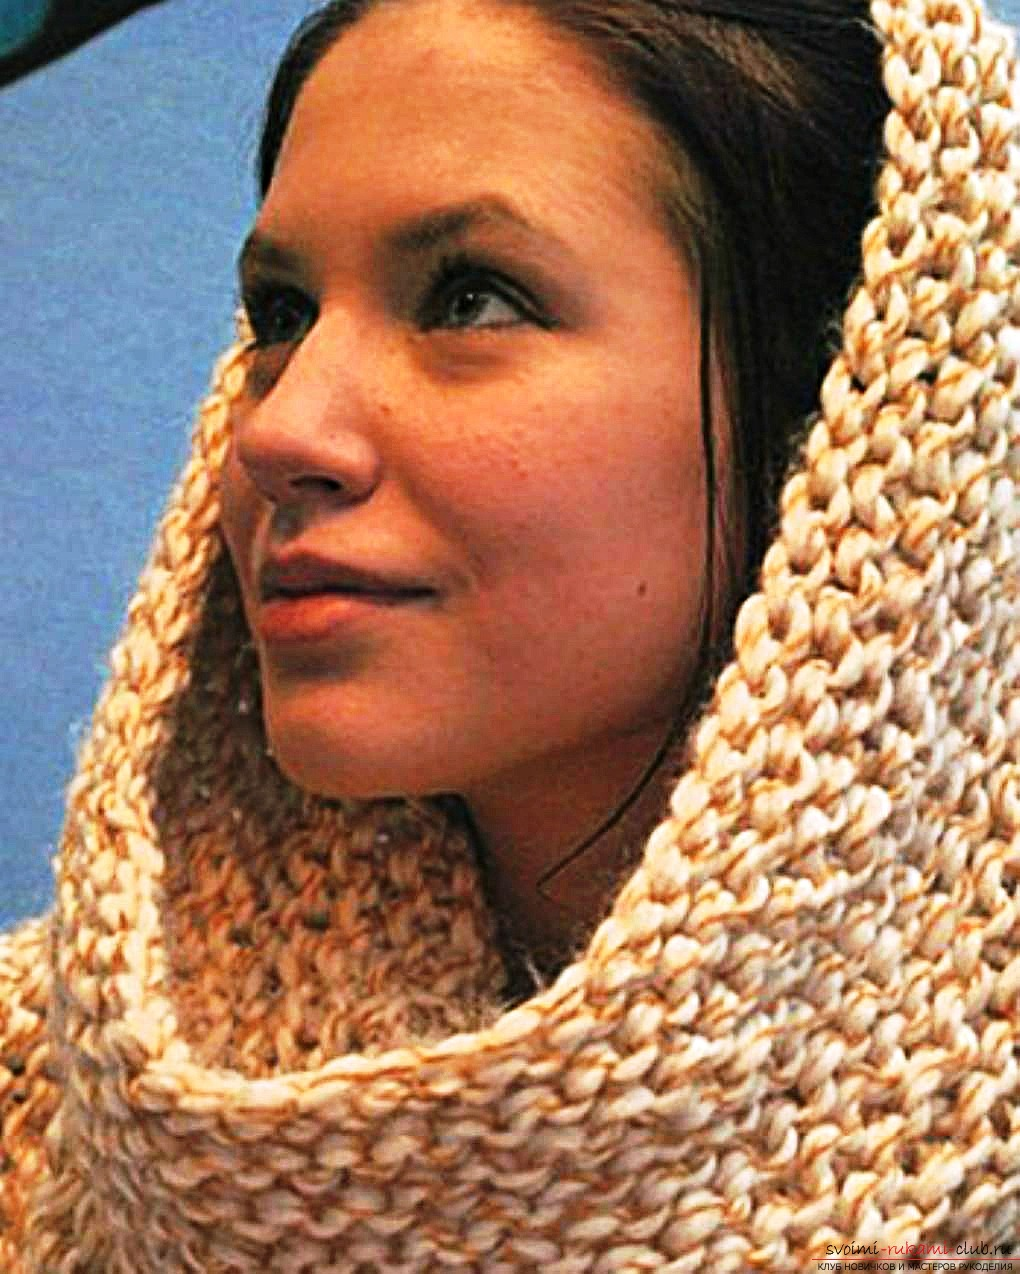 knitted knitting needles with a delicate openwork scarf-yoke. Photo №5